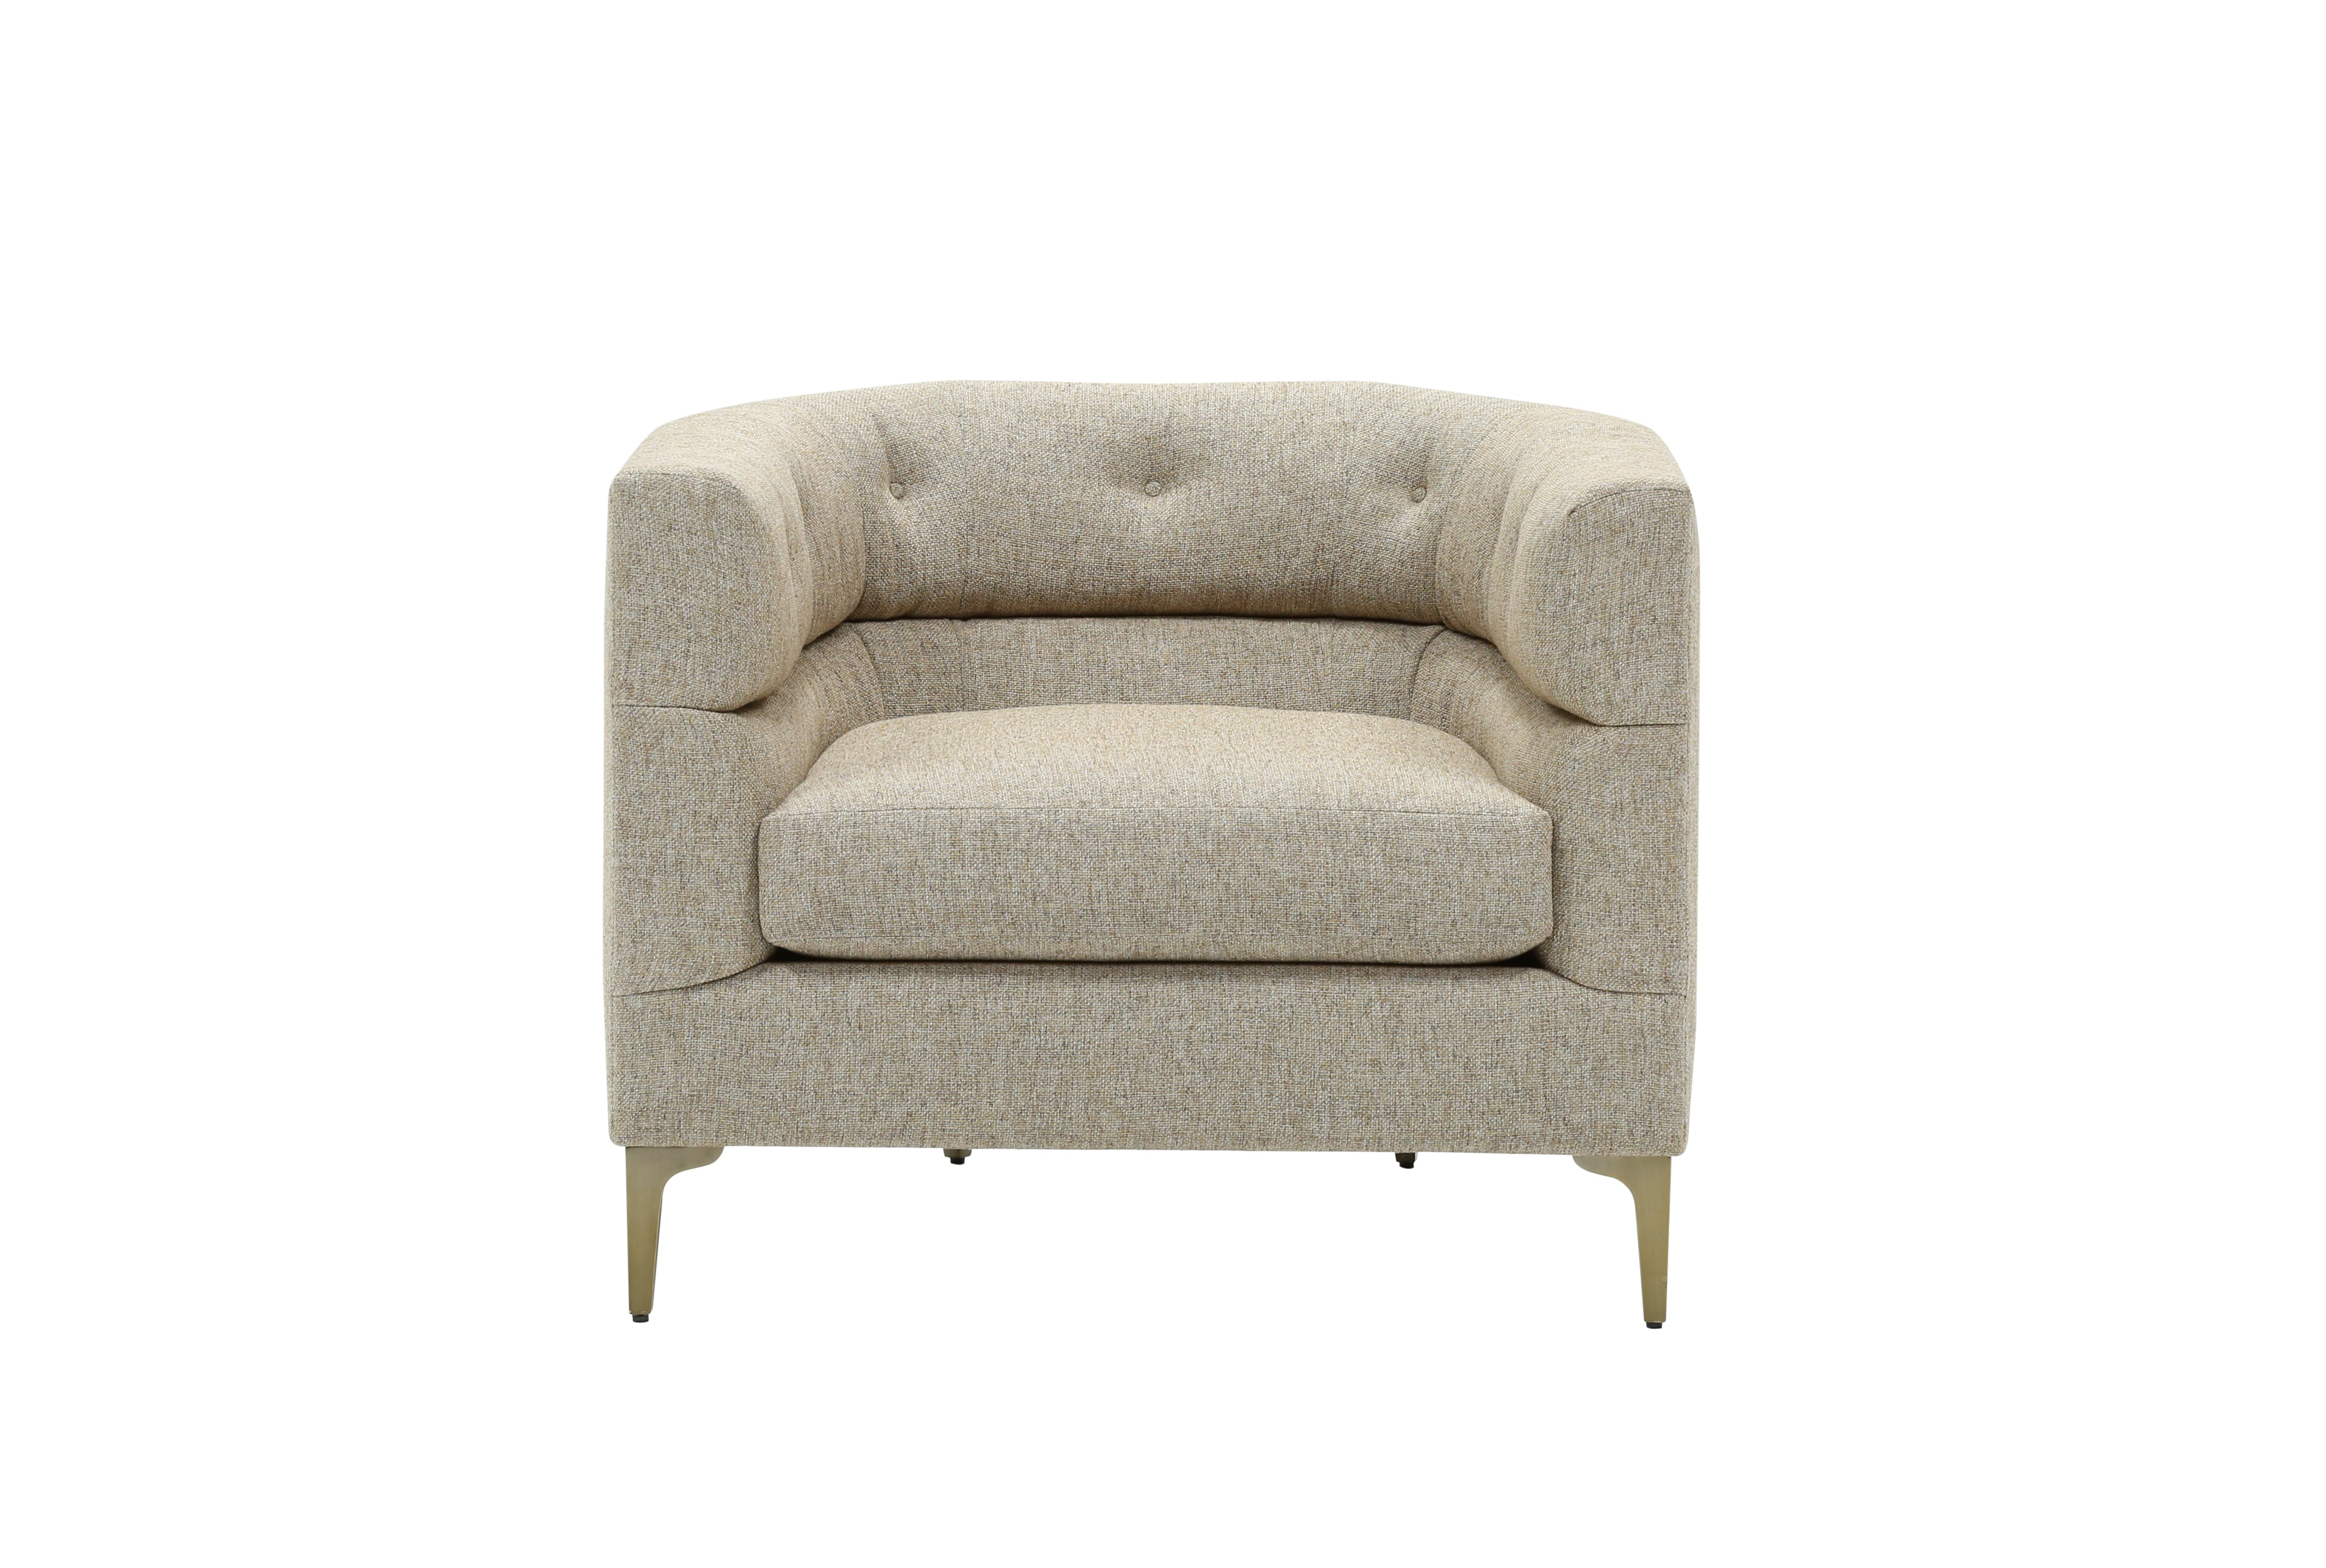 Nate Berkus Just Launched A Home Collection With Hubby Jeremiah Inside Matteo Arm Sofa Chairs By Nate Berkus And Jeremiah Brent (Image 16 of 25)